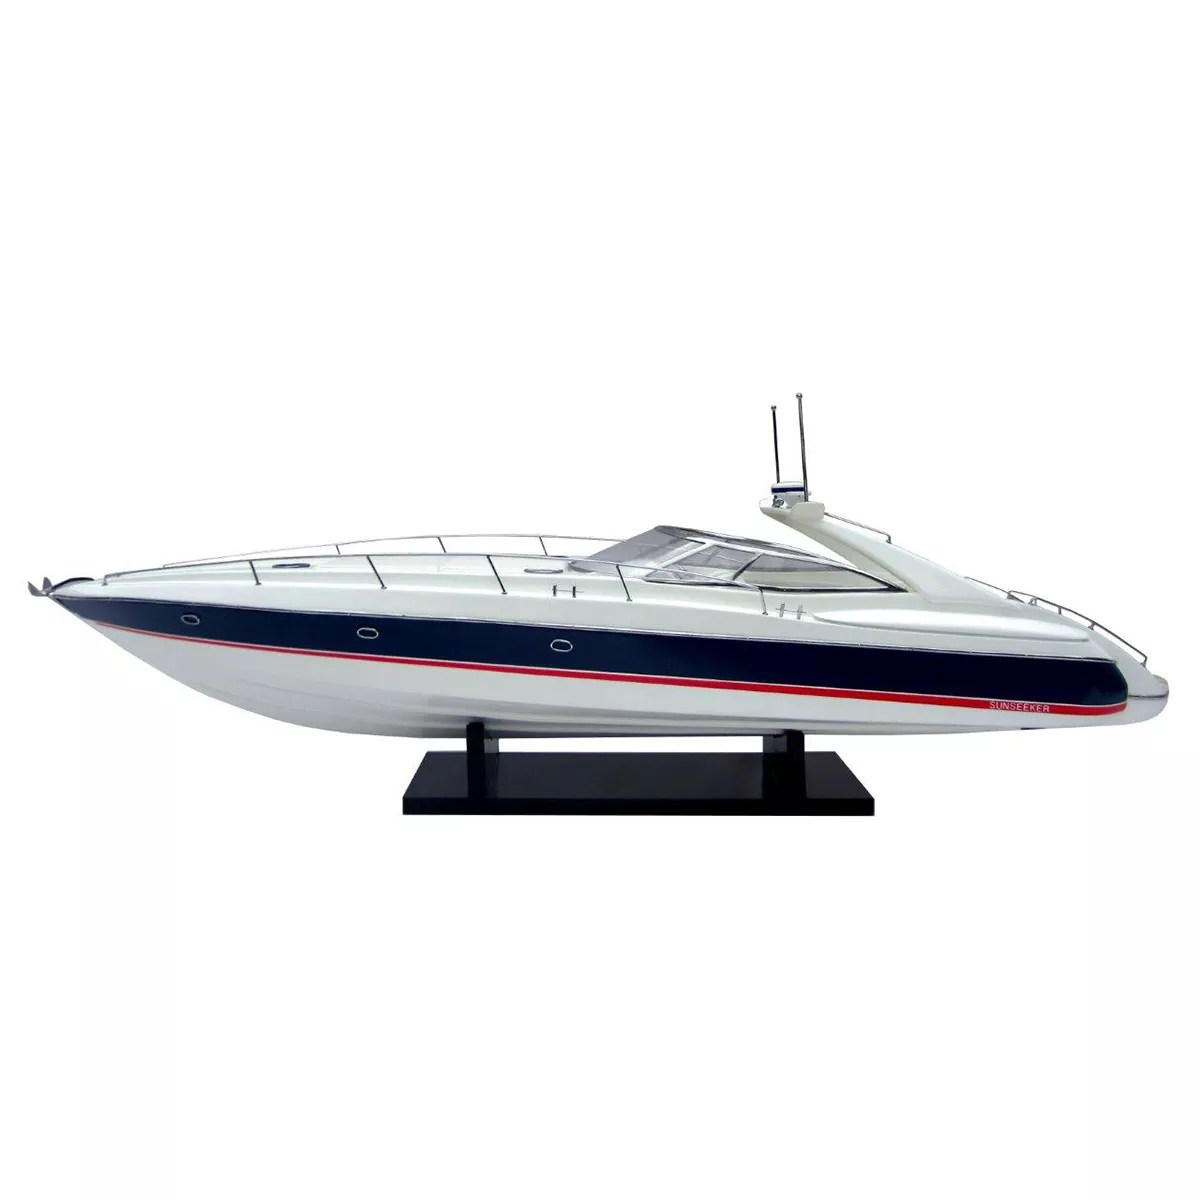 Sunseeker Super Hawk 48 Motorcsónak makett